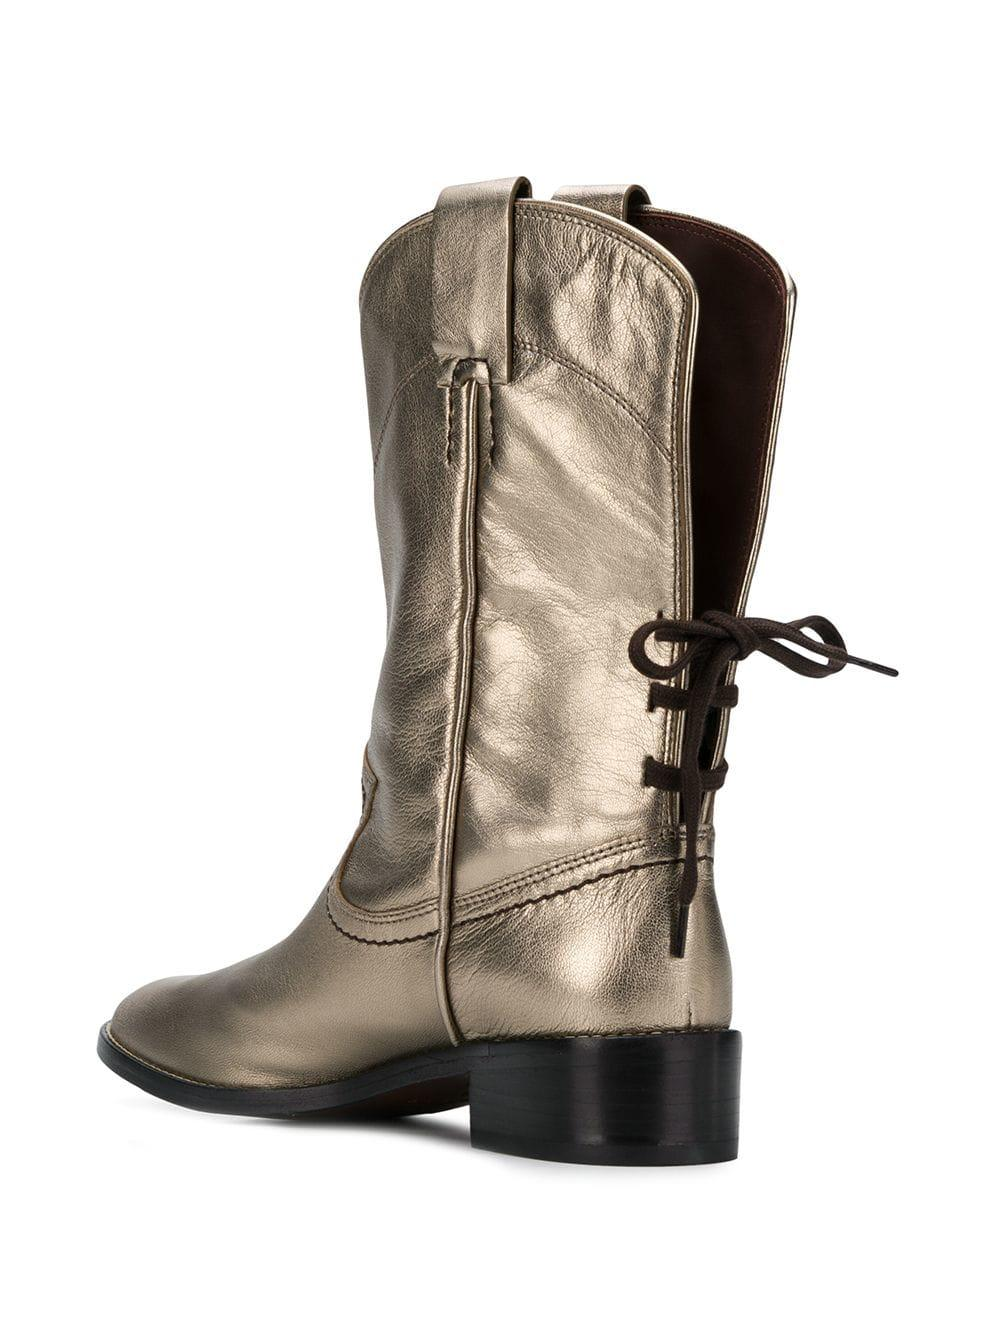 By Cowboy Boots Lyst Metallic In Mid See Inspired Calf Chloé ORq55TUPw